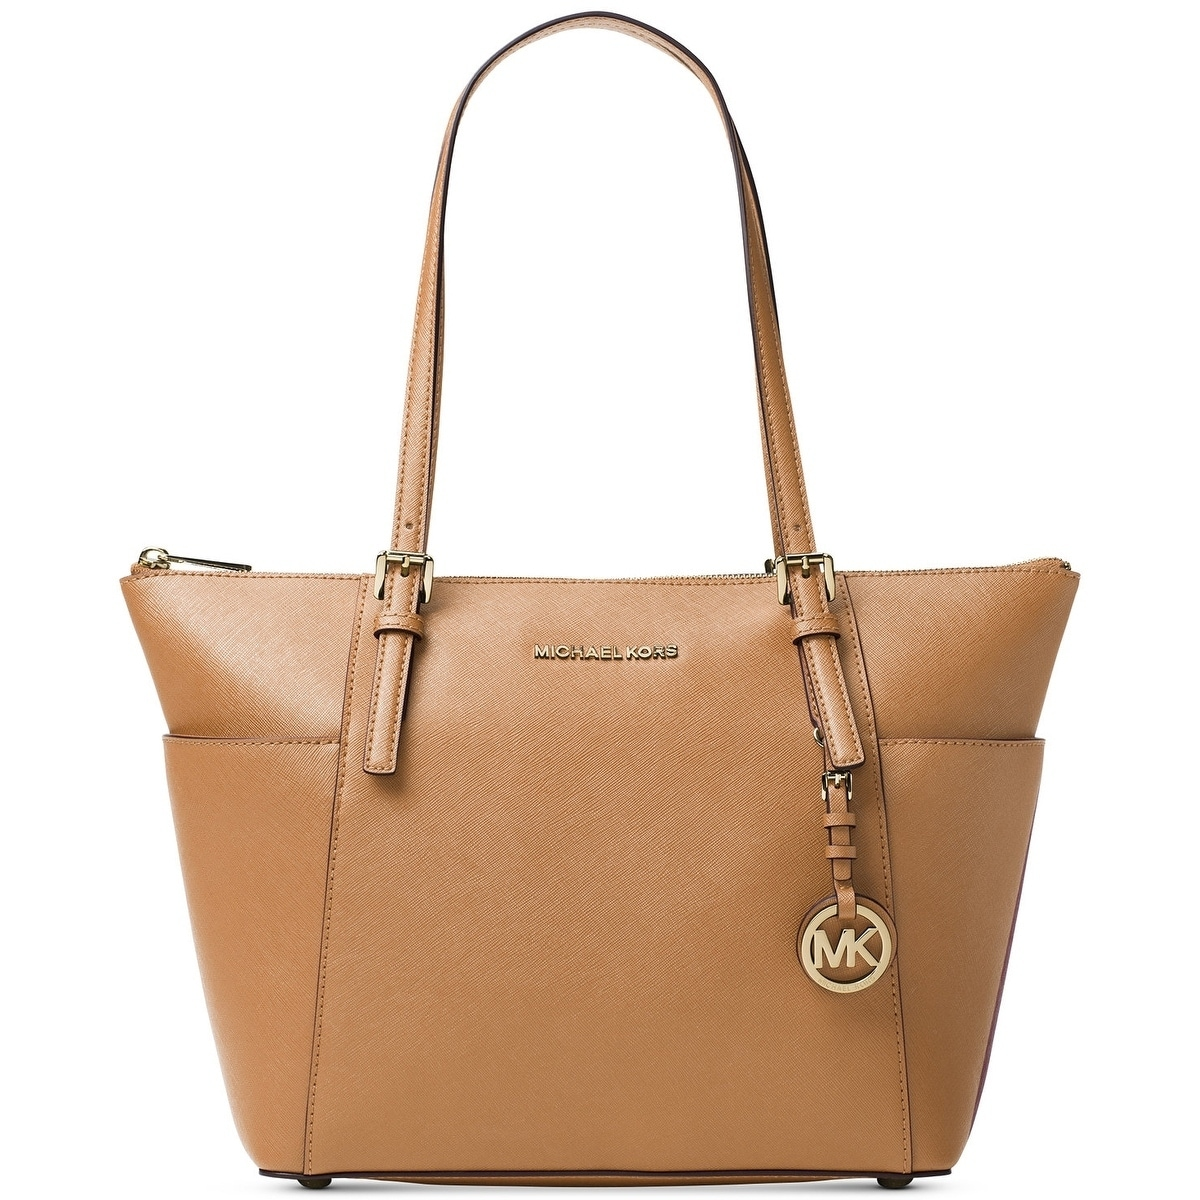 19656b1a4257 Michael Kors Jet Set Top-Zip Saffiano Leather - Tote - Acorn -  30F2GTTT8L-532